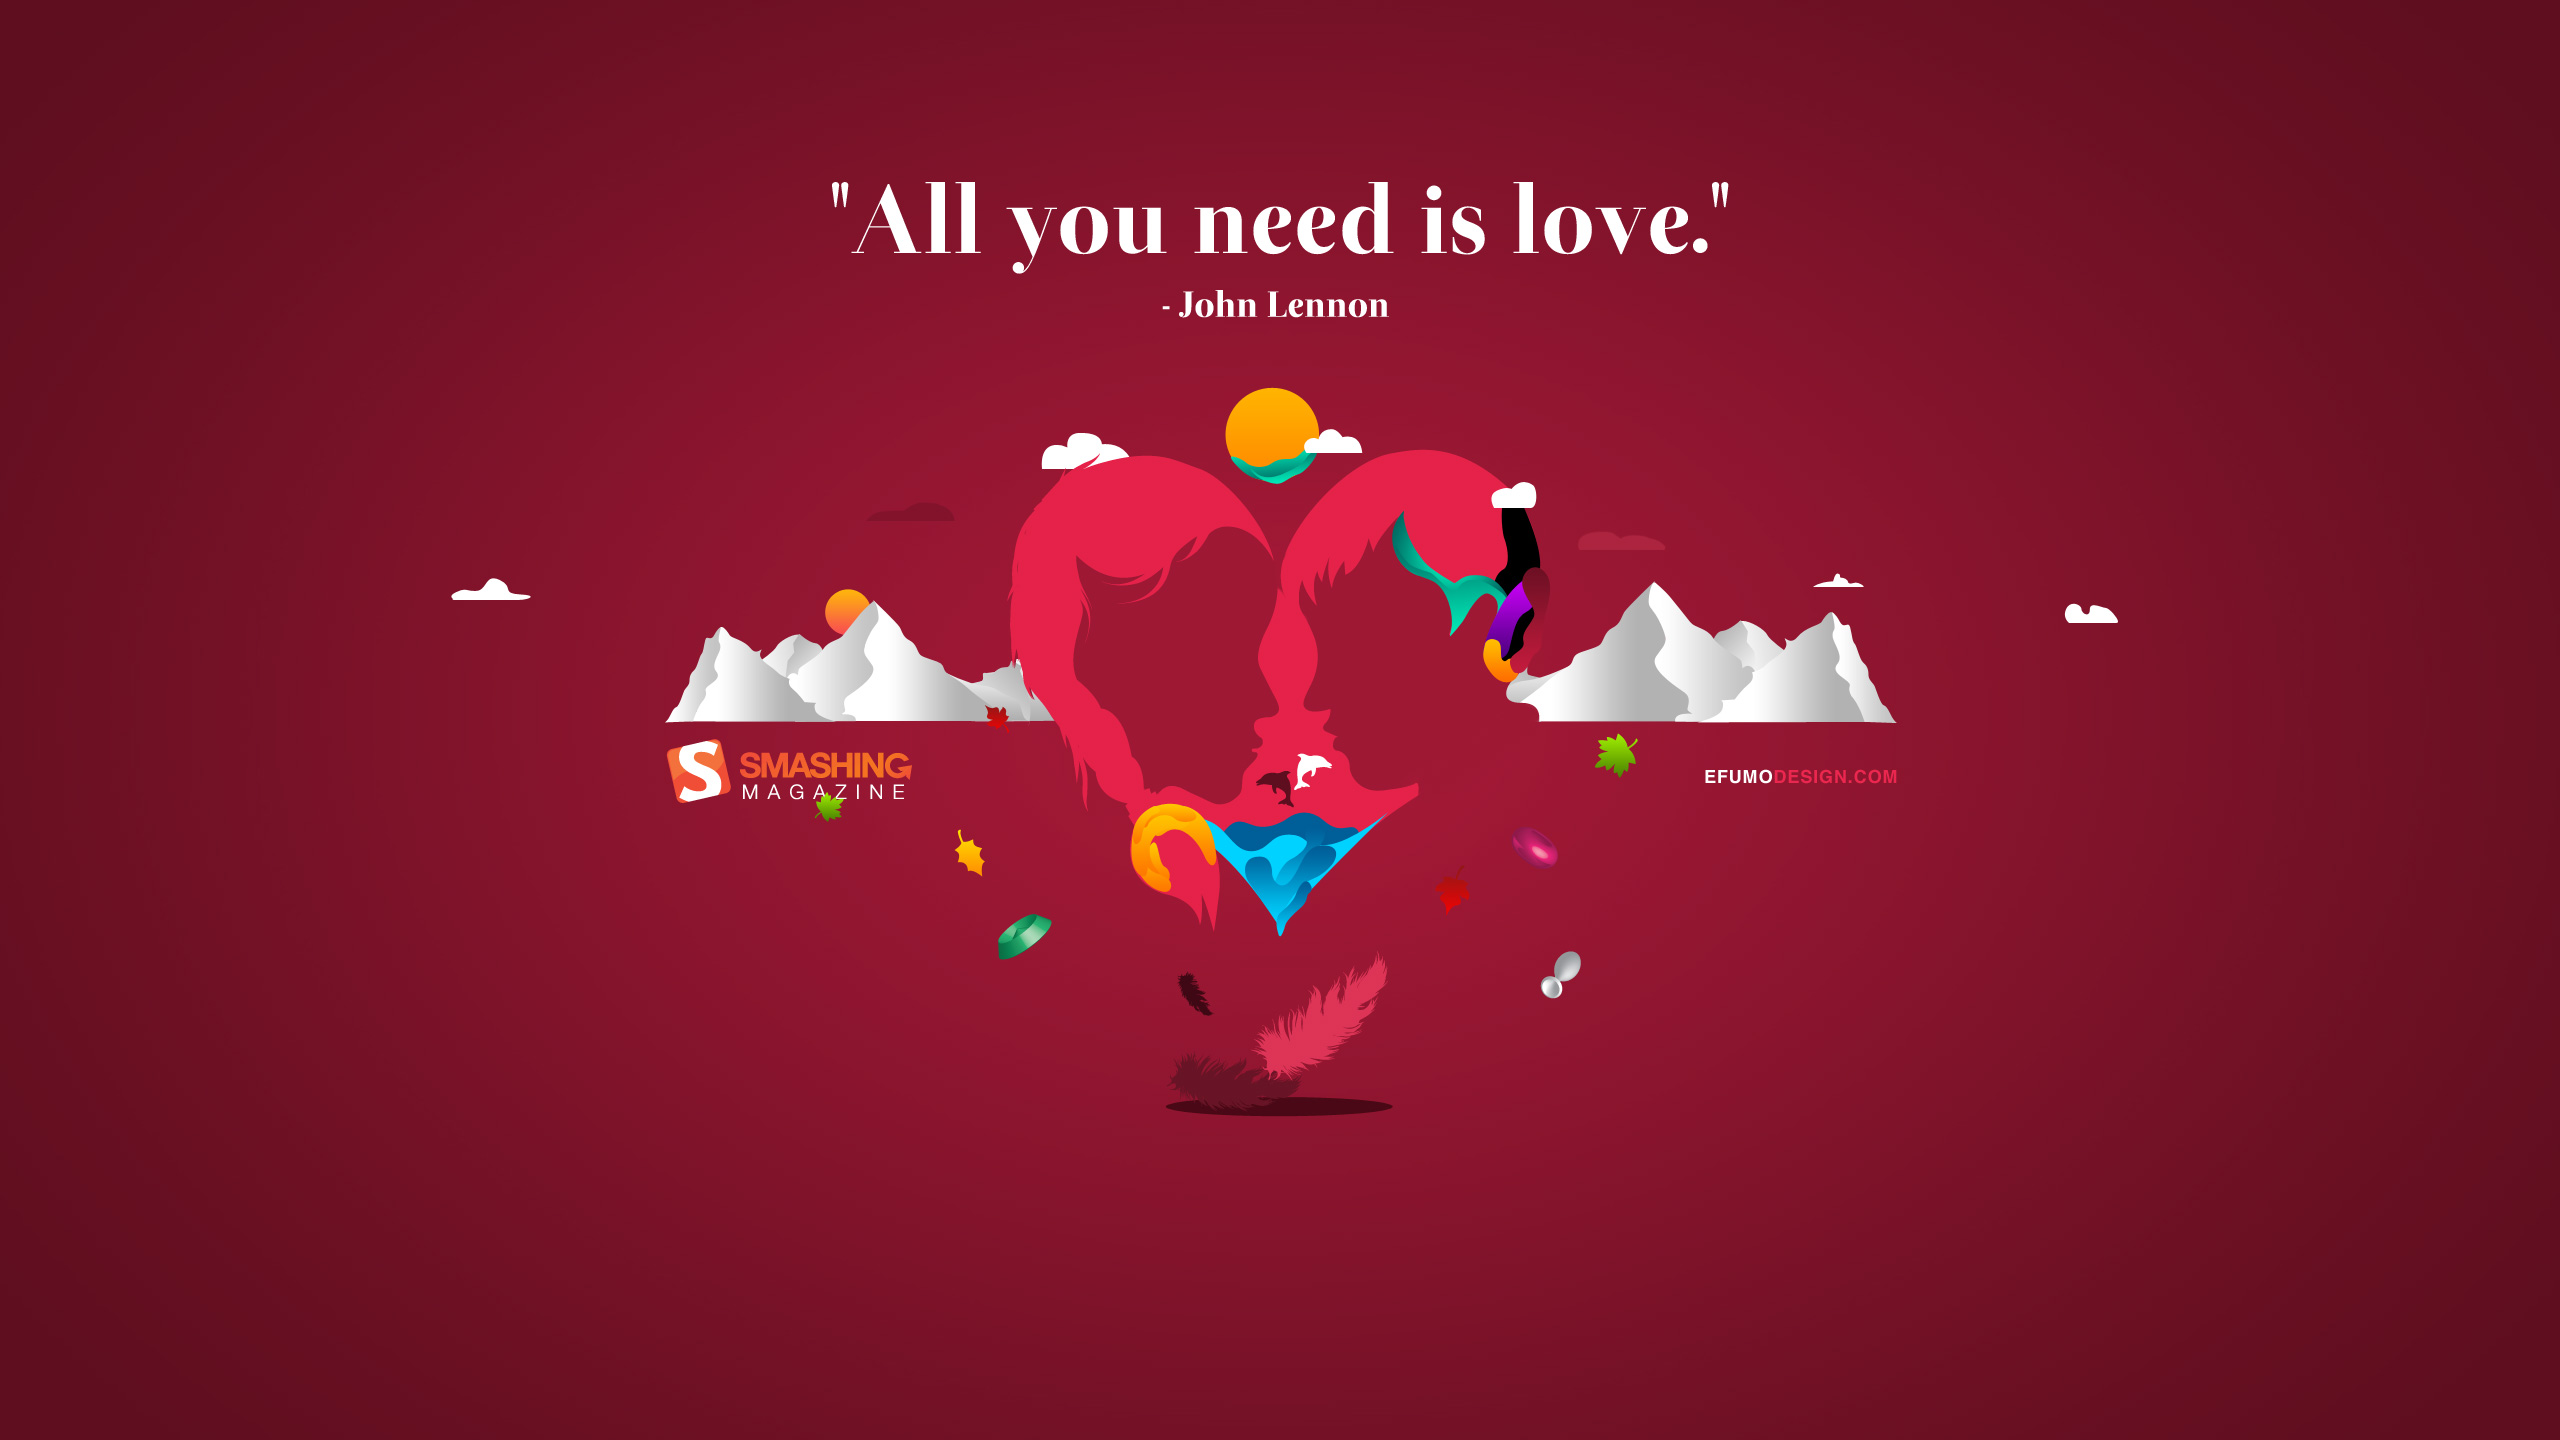 2560x1440 All You Need Is Love YouTube Channel Cover